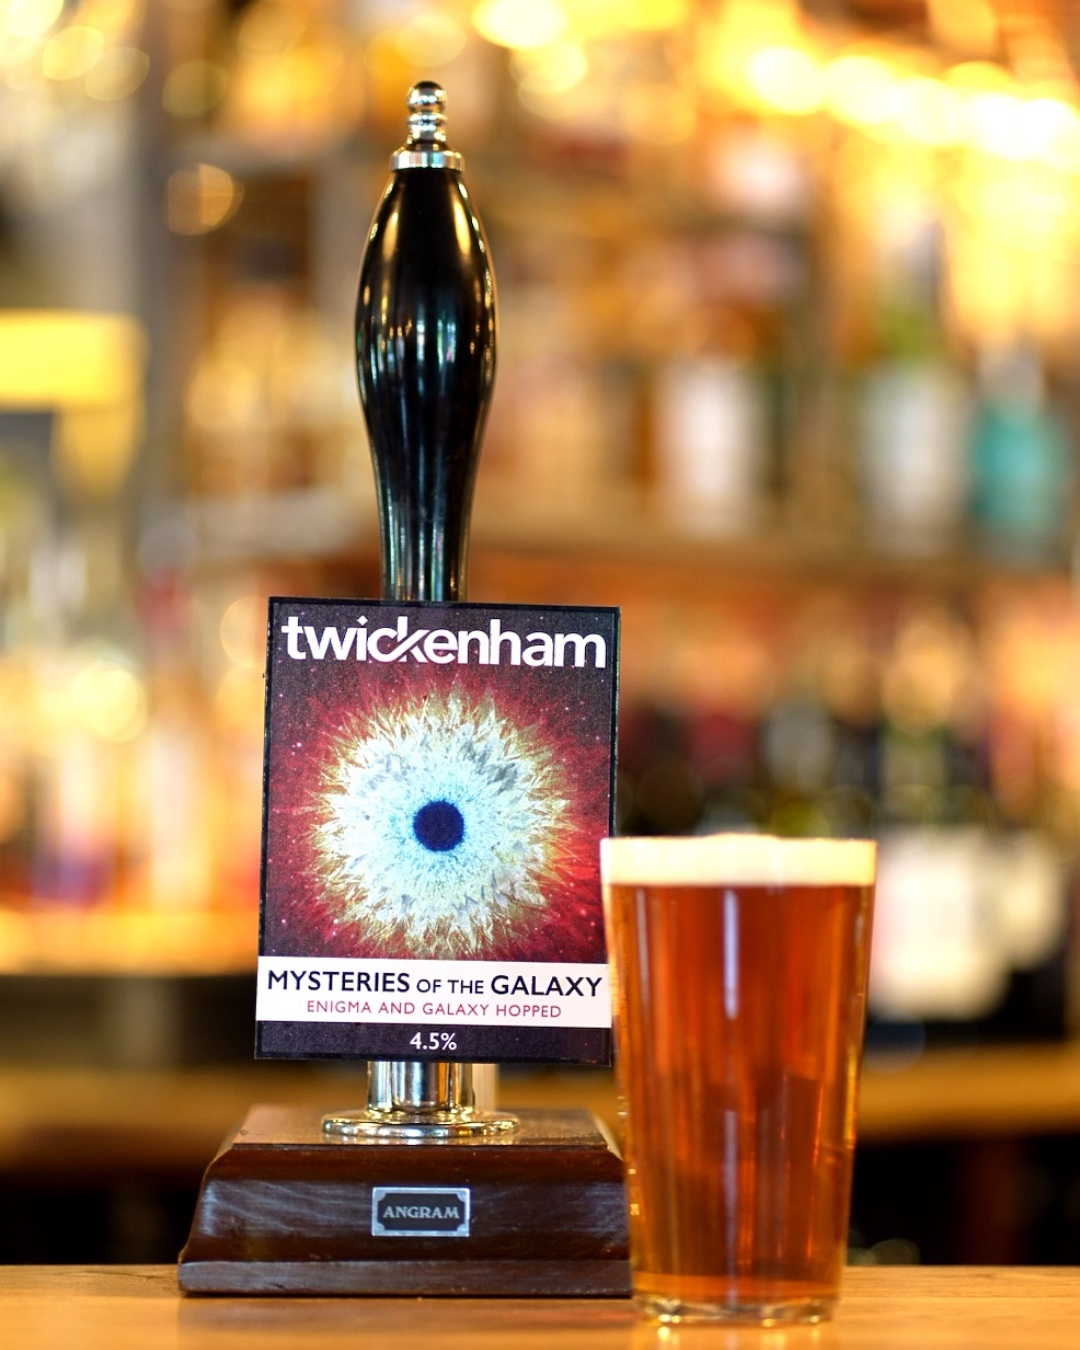 Happy Saturday Highgate!  We have a refreshing new ale on tap for you to try... Mysteries of the Galaxy! A delicious hoppy beer with a touch of citrus and pine in the background. Perfect for day like today....   For those at the festival, we hope you are having a wonderful time in the sunshine!  Don't forget to book your table for Sunday roasts tomorrow! See you soon!  #hoppy #ale #beer #festival #kenwoodhouse #hampsetadheath #howthelightgetsin #treatyourself #gardendining #northlondon #highgate #drinks #hampstead